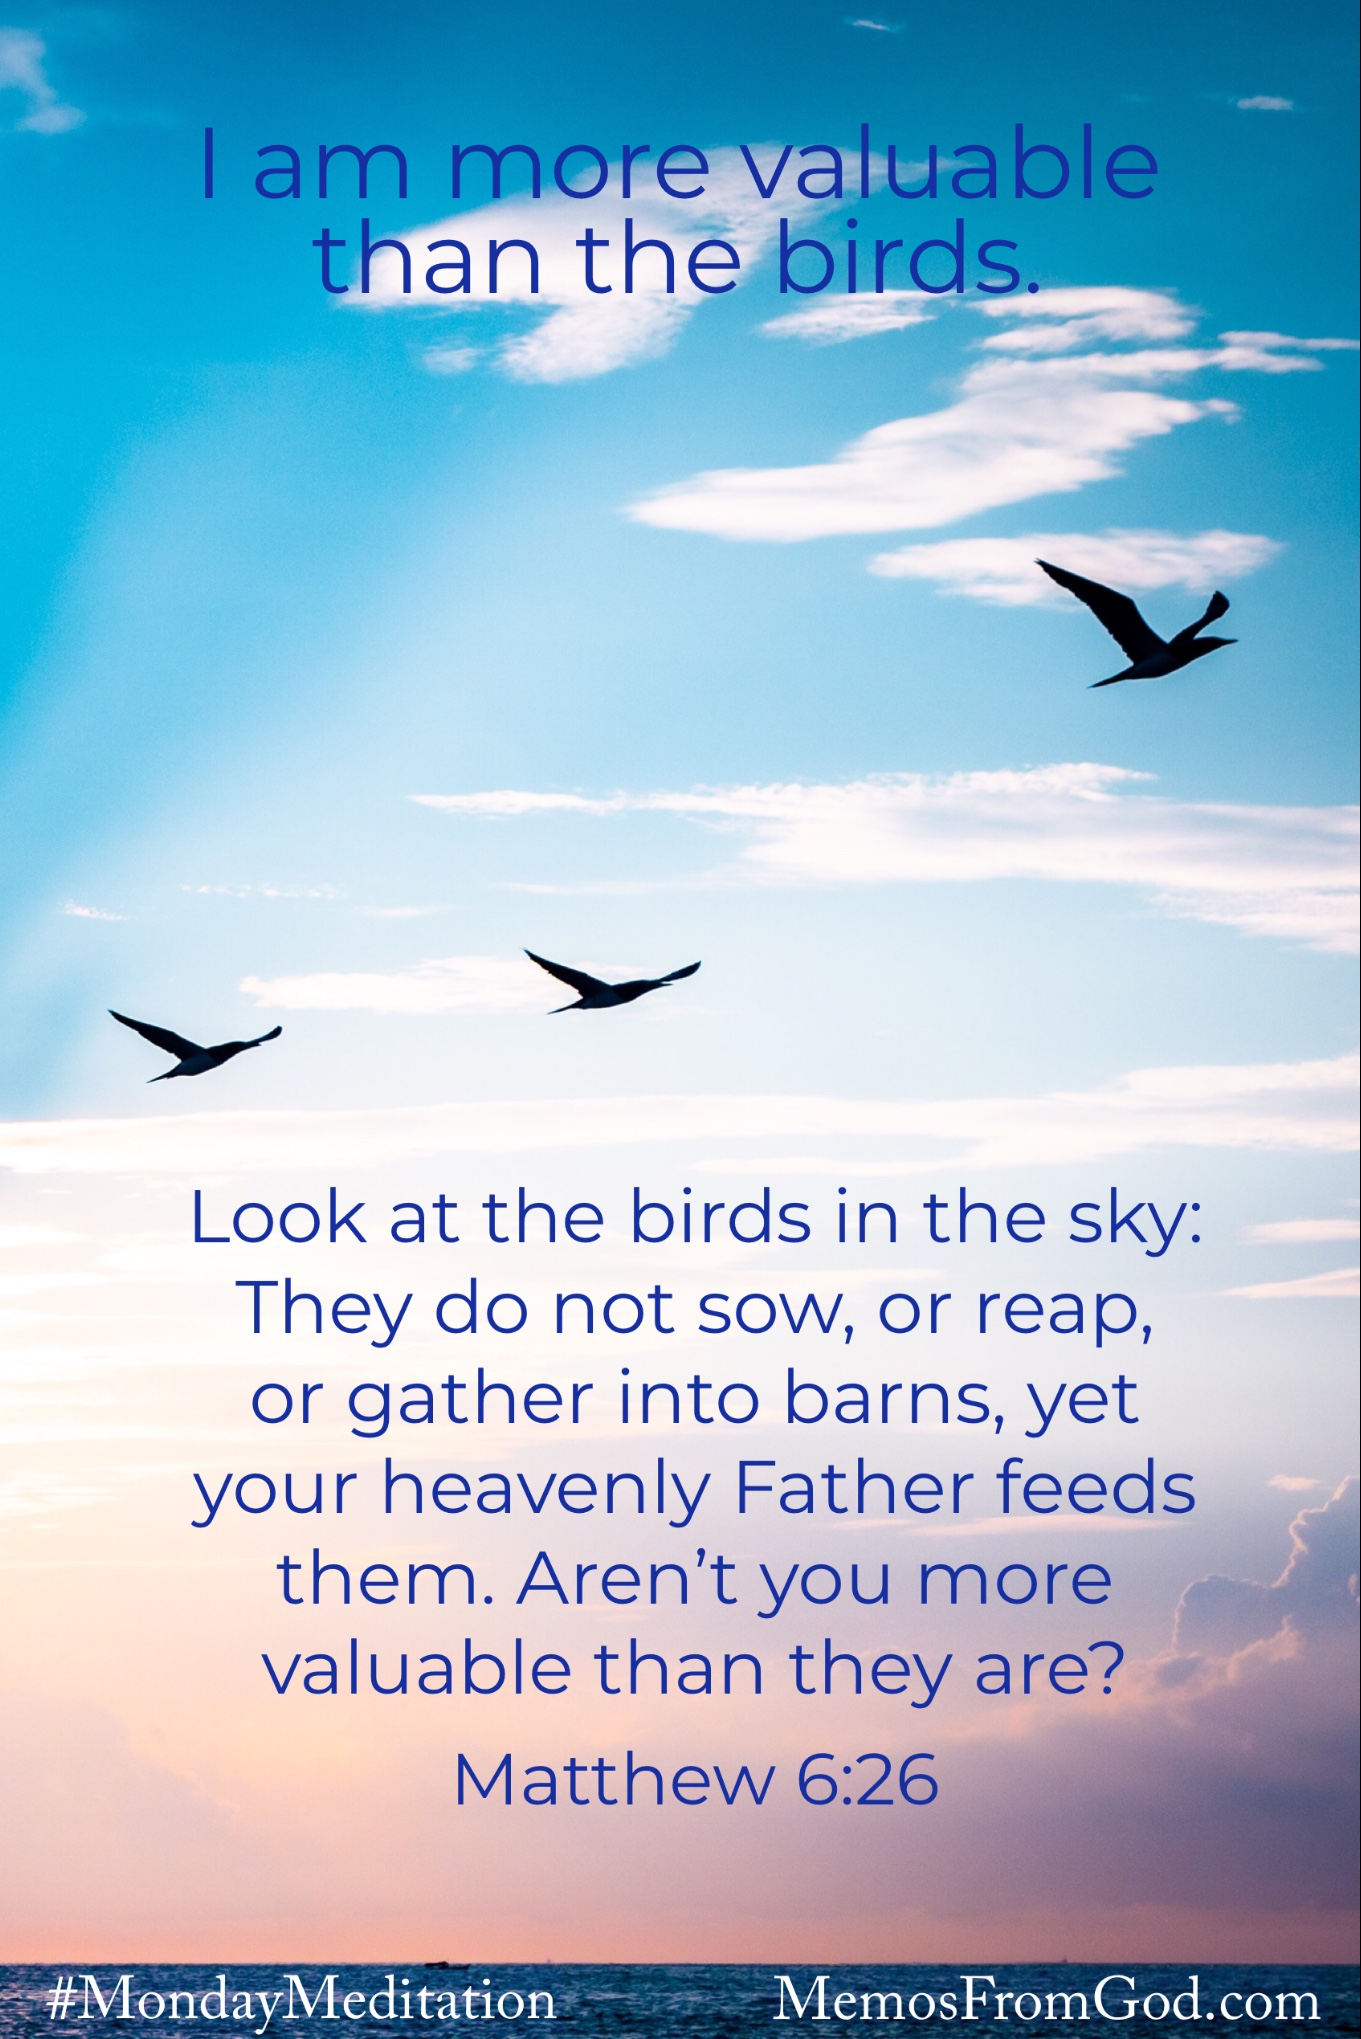 The silhouettes of three large birds flying in a light blue and pink sky. Caption: Look at the birds in the sky: They do not sow, or reap, or gather into barns, yet your heavenly Father feeds them. Aren't you more valuable than they are? Matthew 6:26